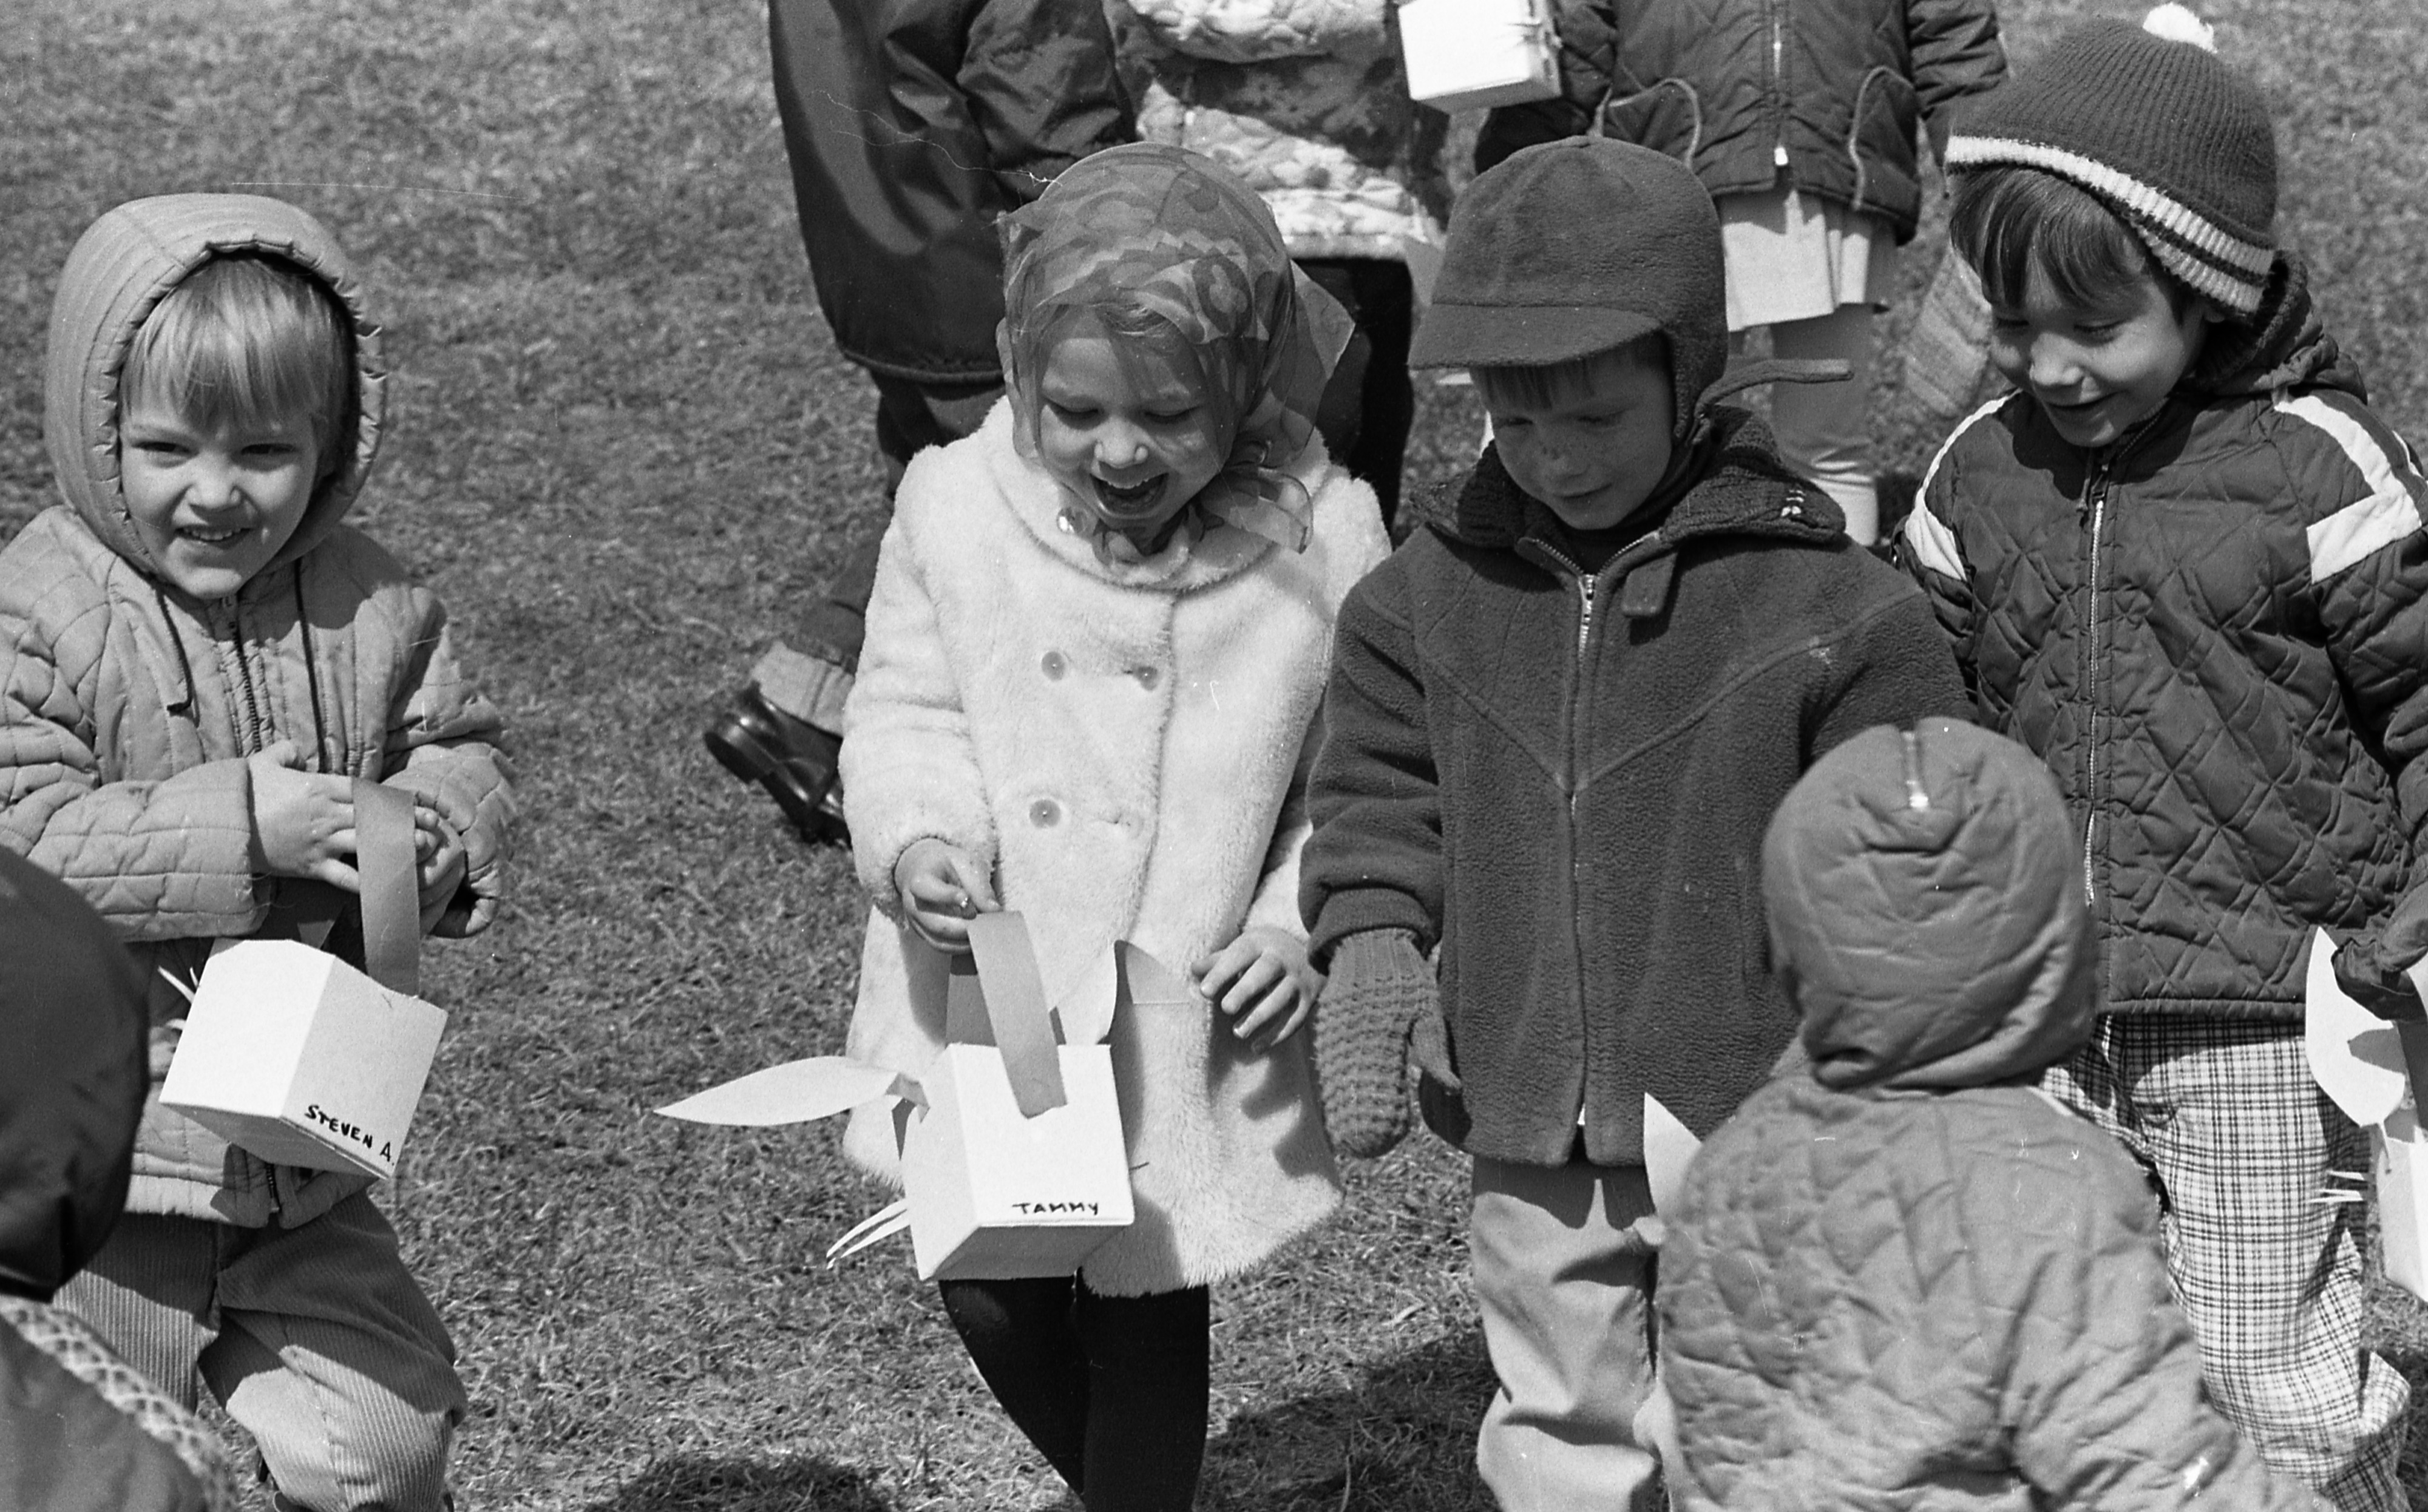 Children From Colonial Square Preschool Nursery Enjoy An Easter Egg Hunt, April 1969 image